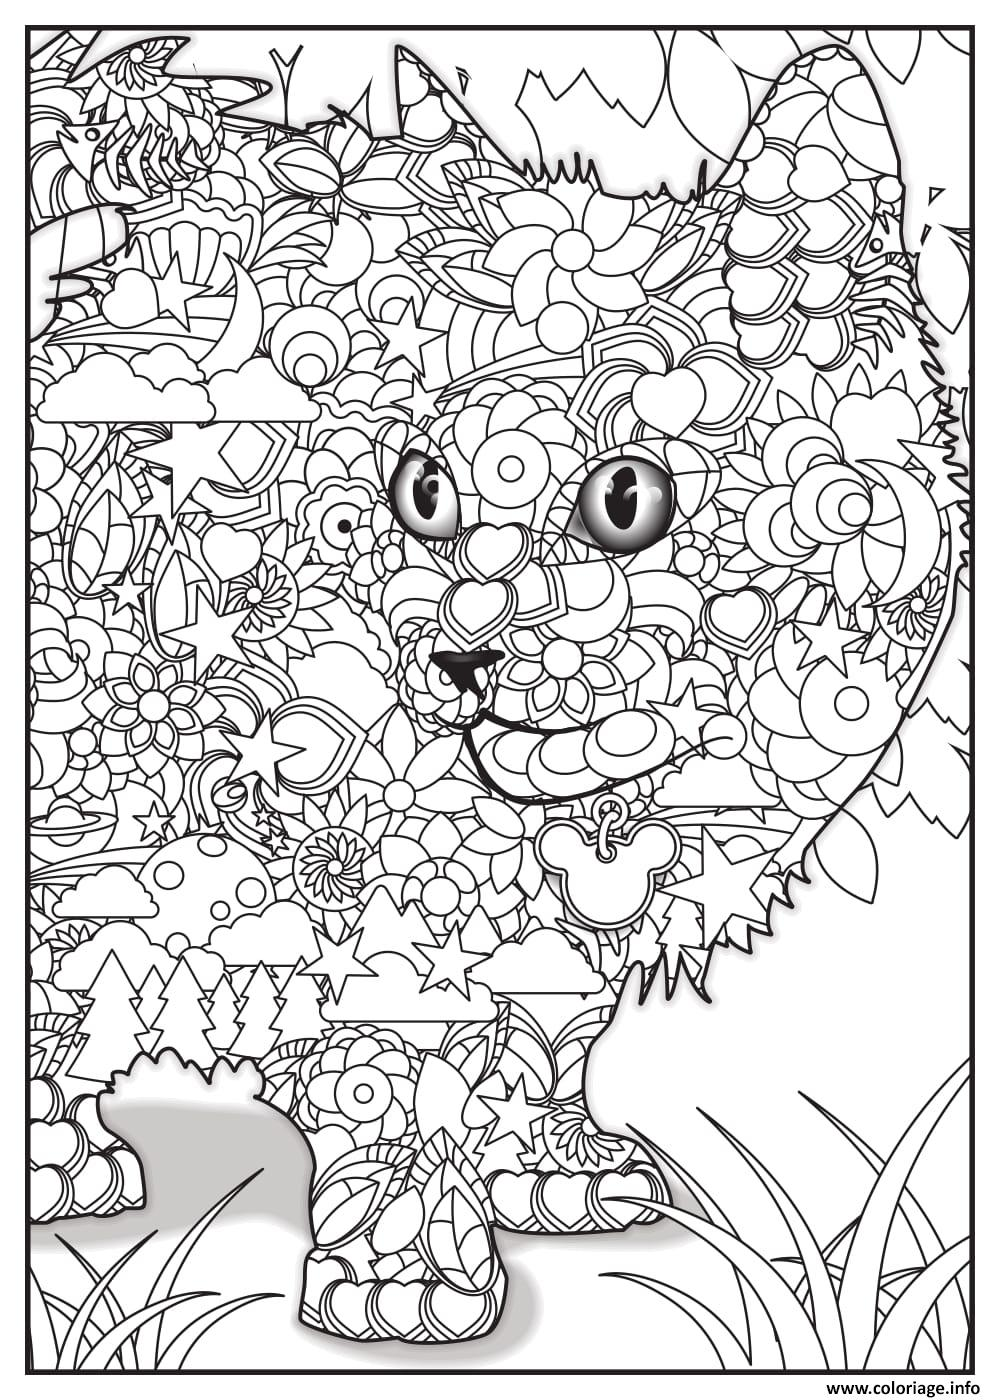 Coloriage chat adulte animaux - Coloriage de chat ...